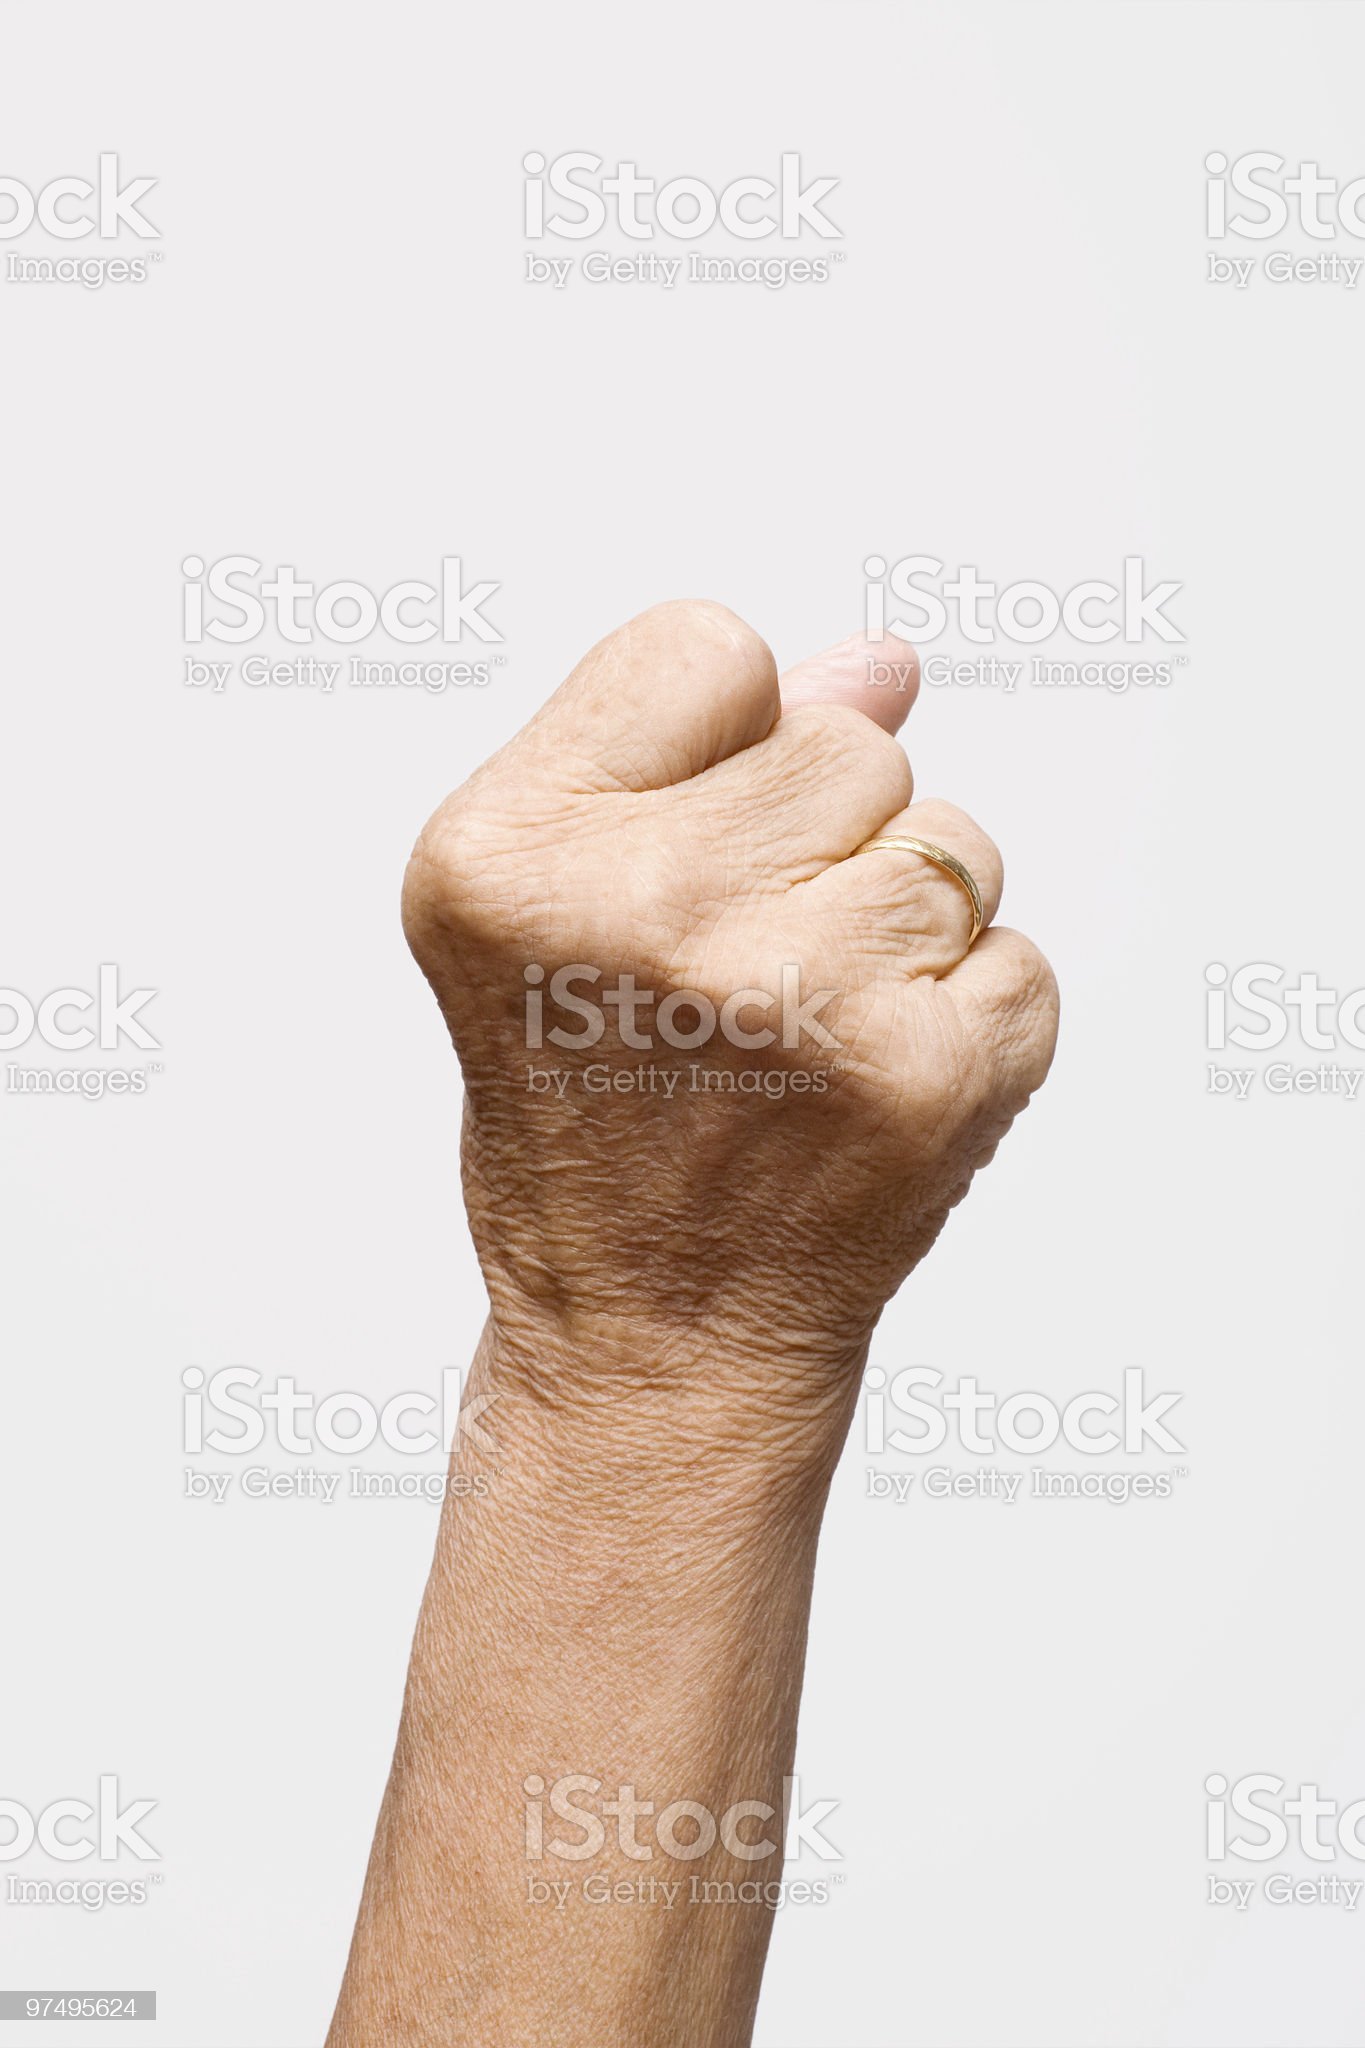 Fist royalty-free stock photo